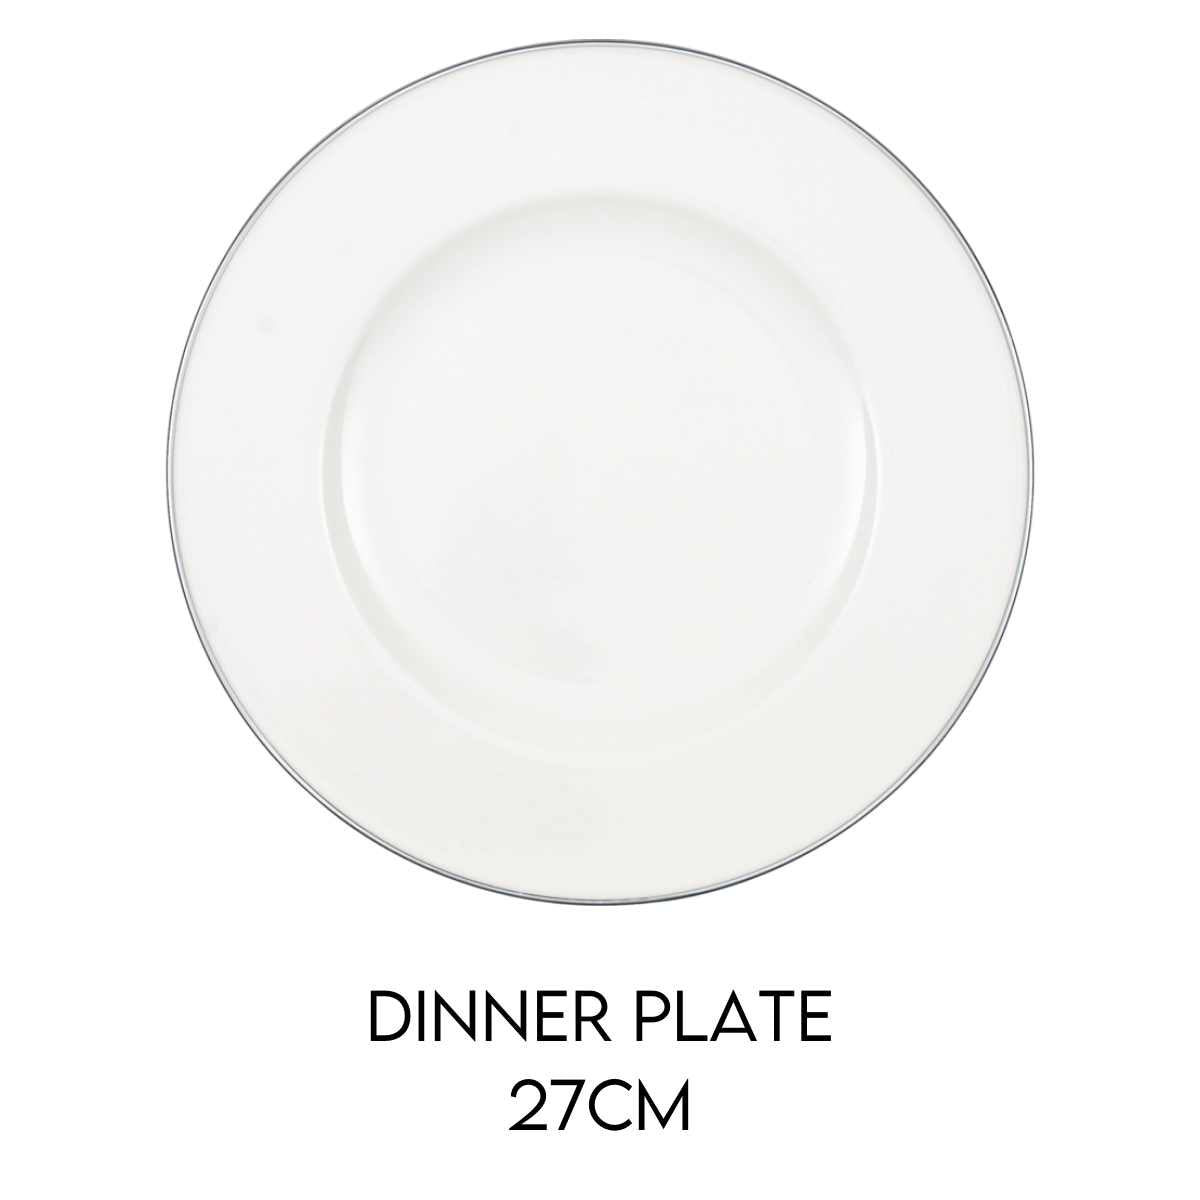 Hostaro Tableware Anmut Platinum dinner plate